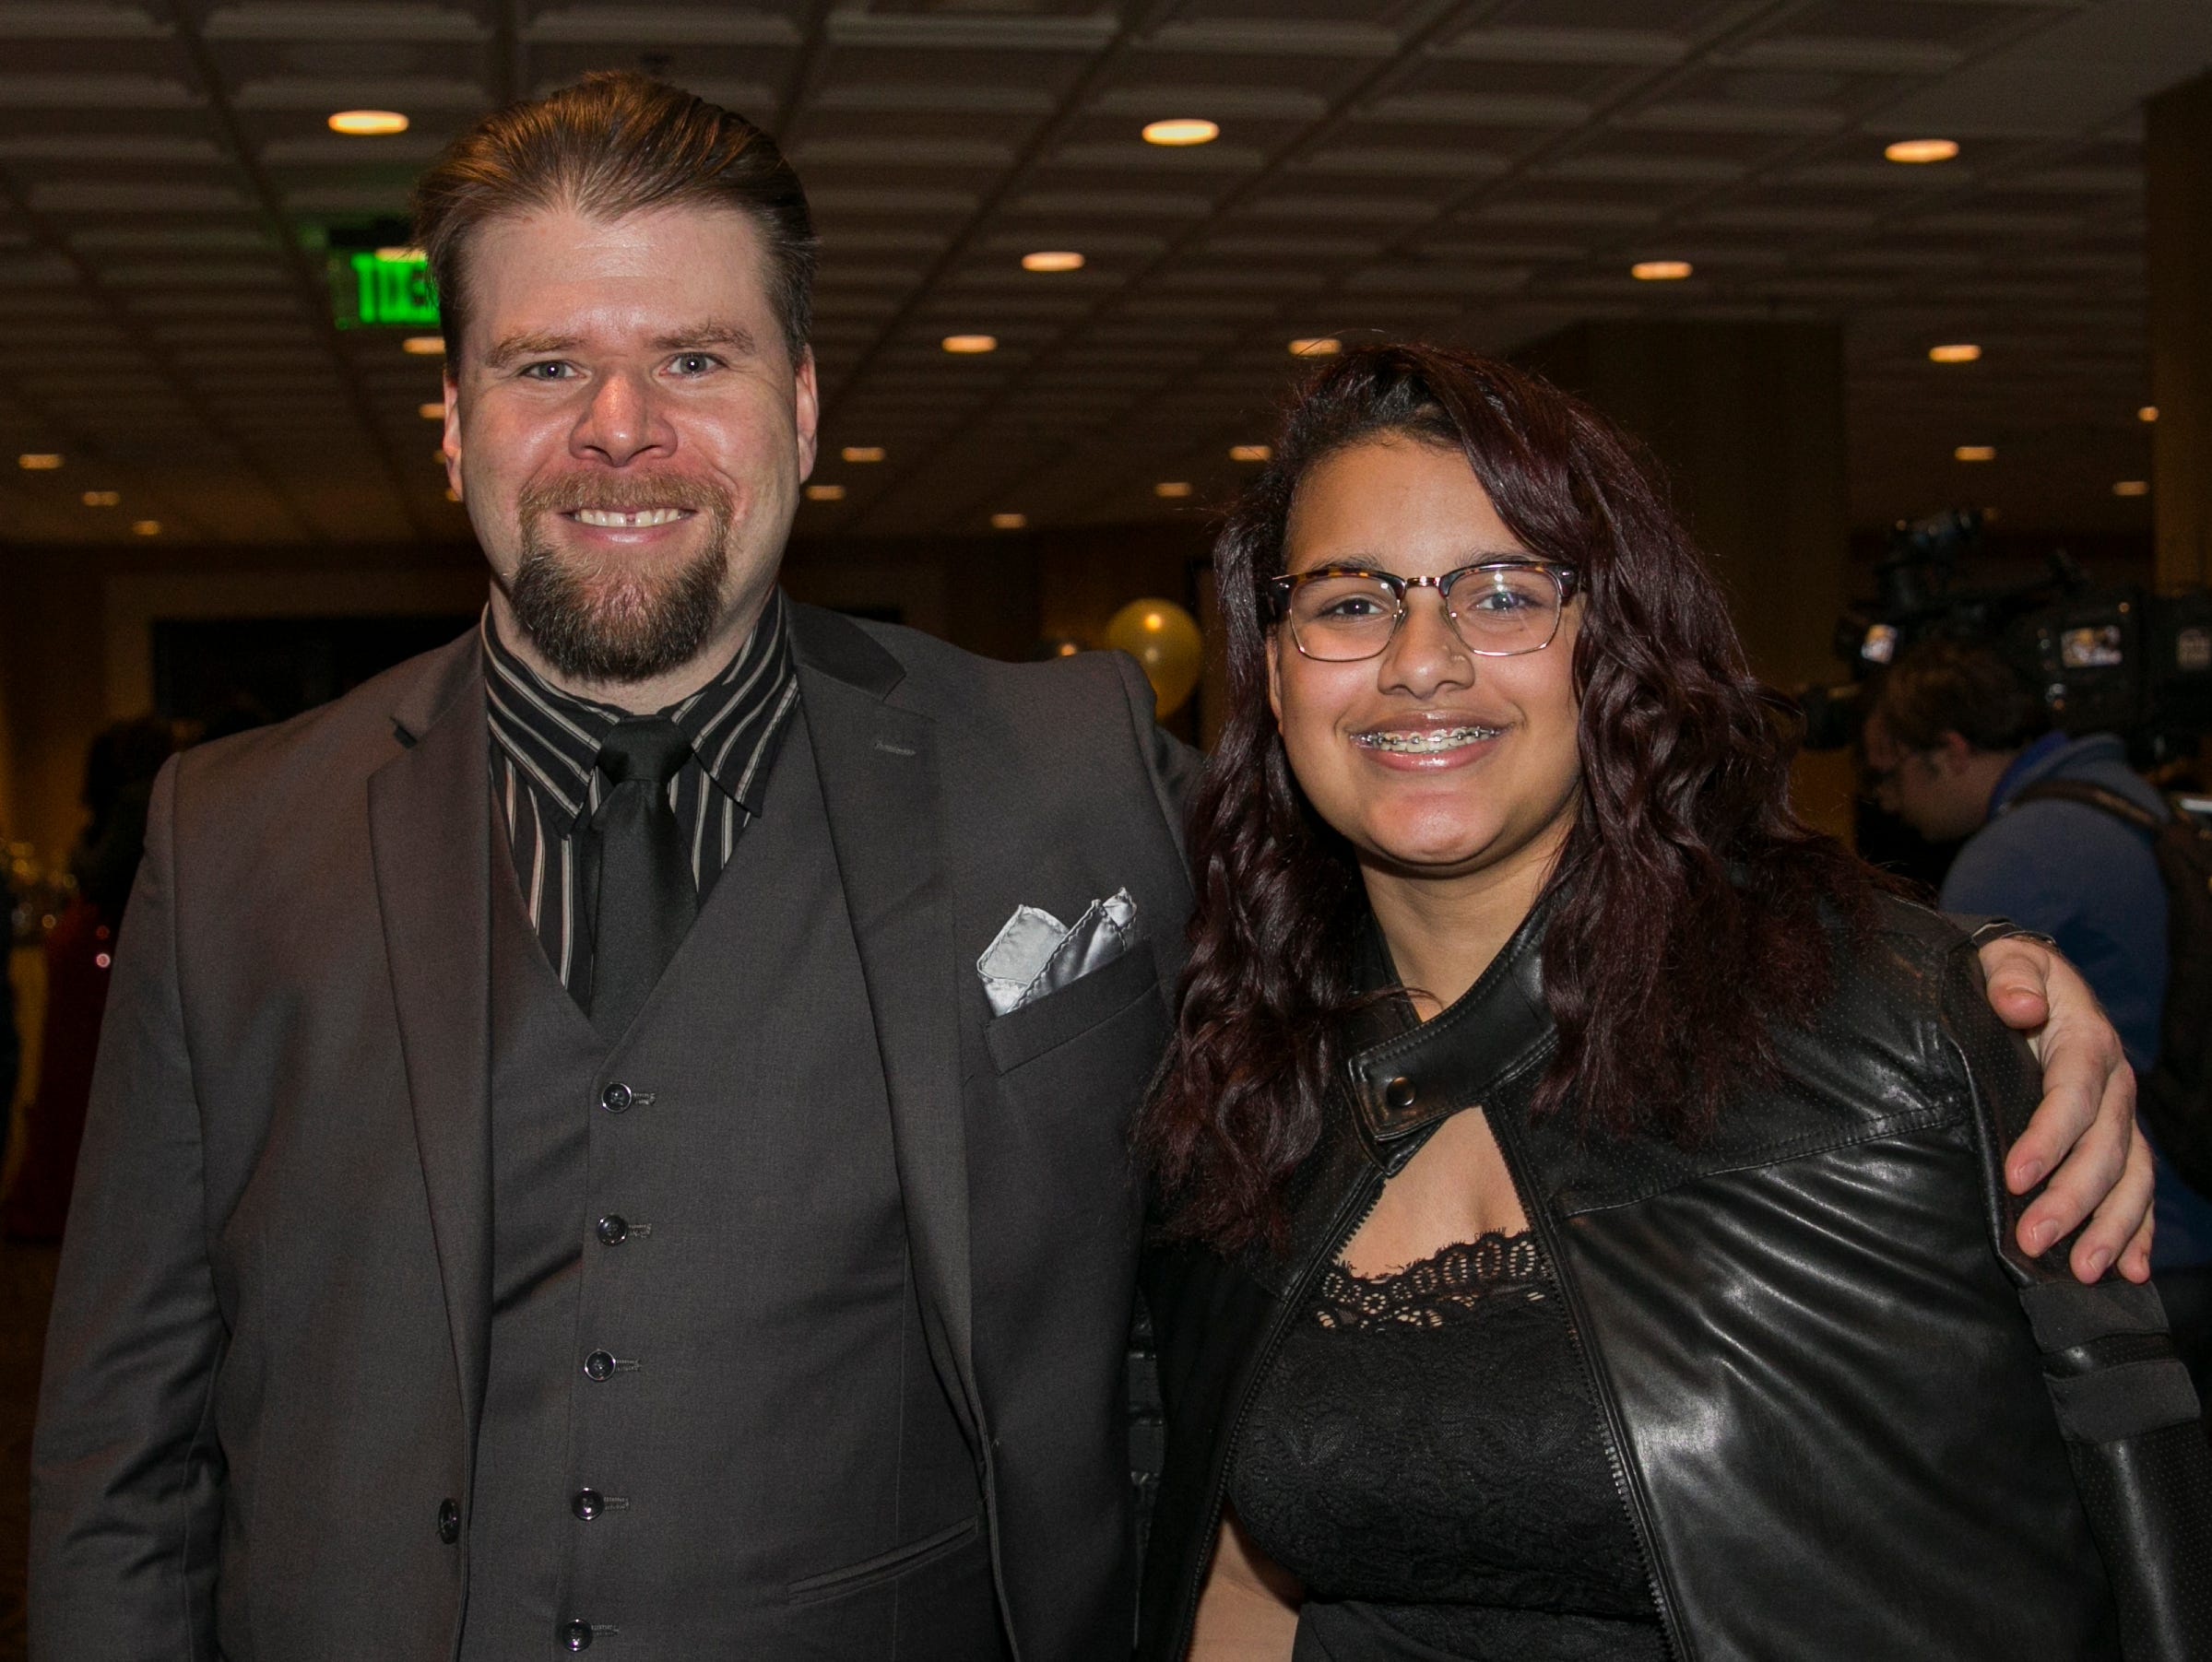 Benjamin Harvey and Nevaeh Borba during the 31st Annual Martin Luther King, Jr. Birthday Celebration Dinner at the Atlantis Casino Resort Spa on Monday, January 21, 2109 in Reno, Nevada.